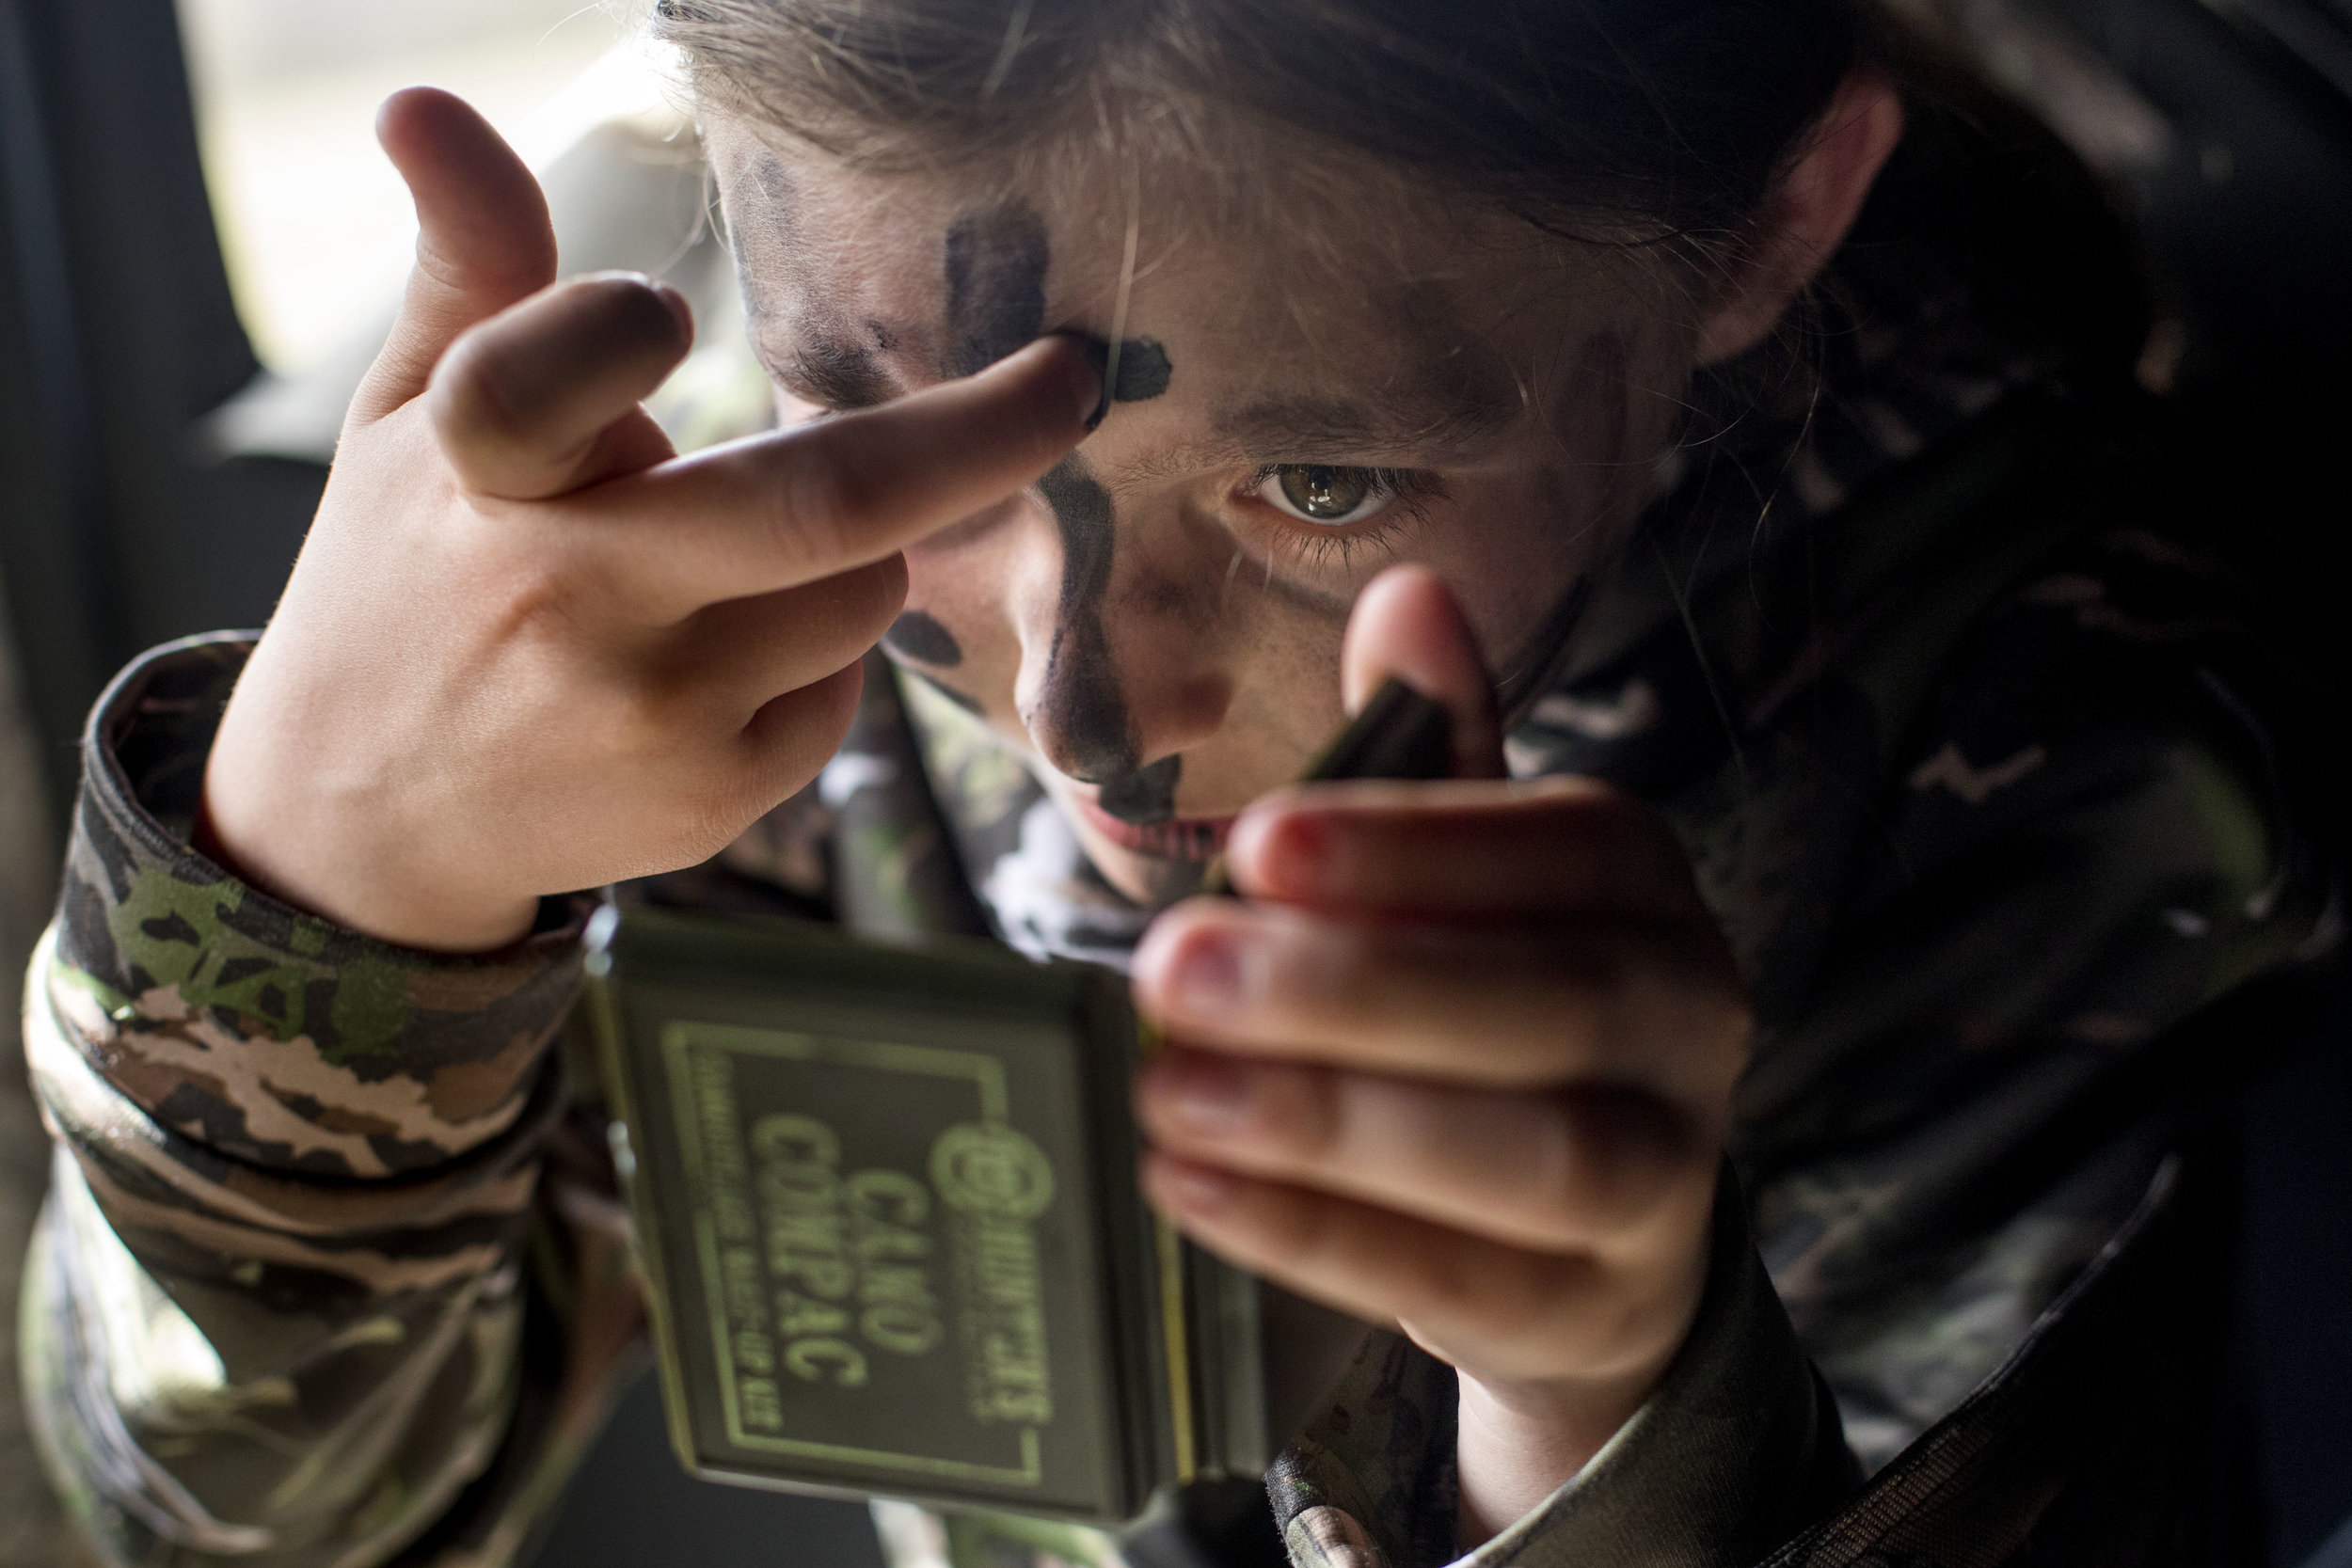 """Maris Drew of Jasper, 11, applied camo face paint in the hunting blind at the Youth Turkey Hunt at Patoka Lake, Ind. on April 21, 2018. Drew's hunting guide Shannon Gillette of Markleville brought the camo face paint, and said that the face paint is """"sacred"""" to her."""